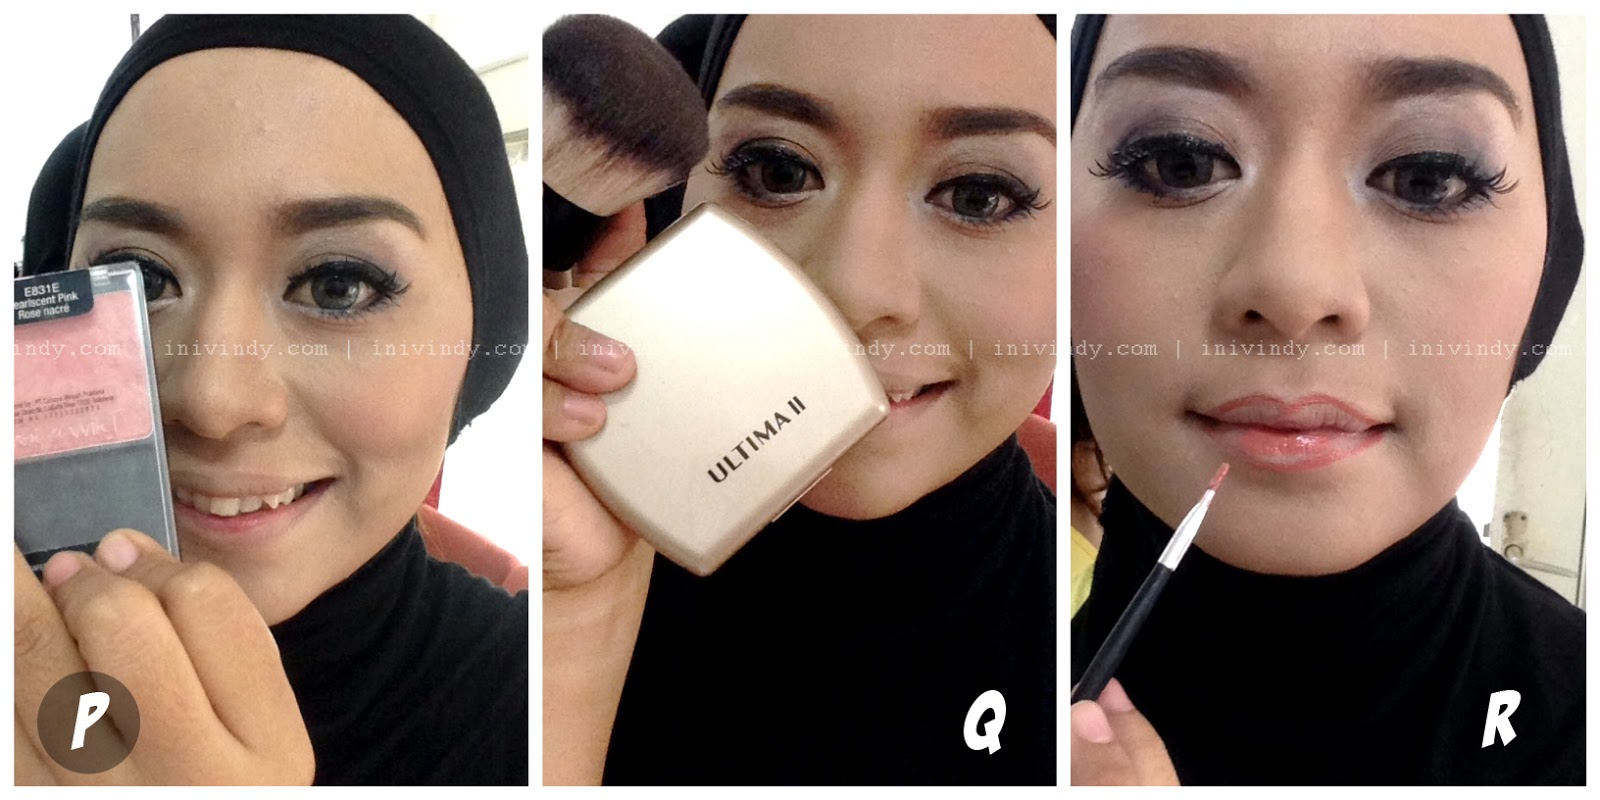 Ini Vindy Yang Ajaib Tutorial Make Up Natural Dan Hijab Wisuda Ala